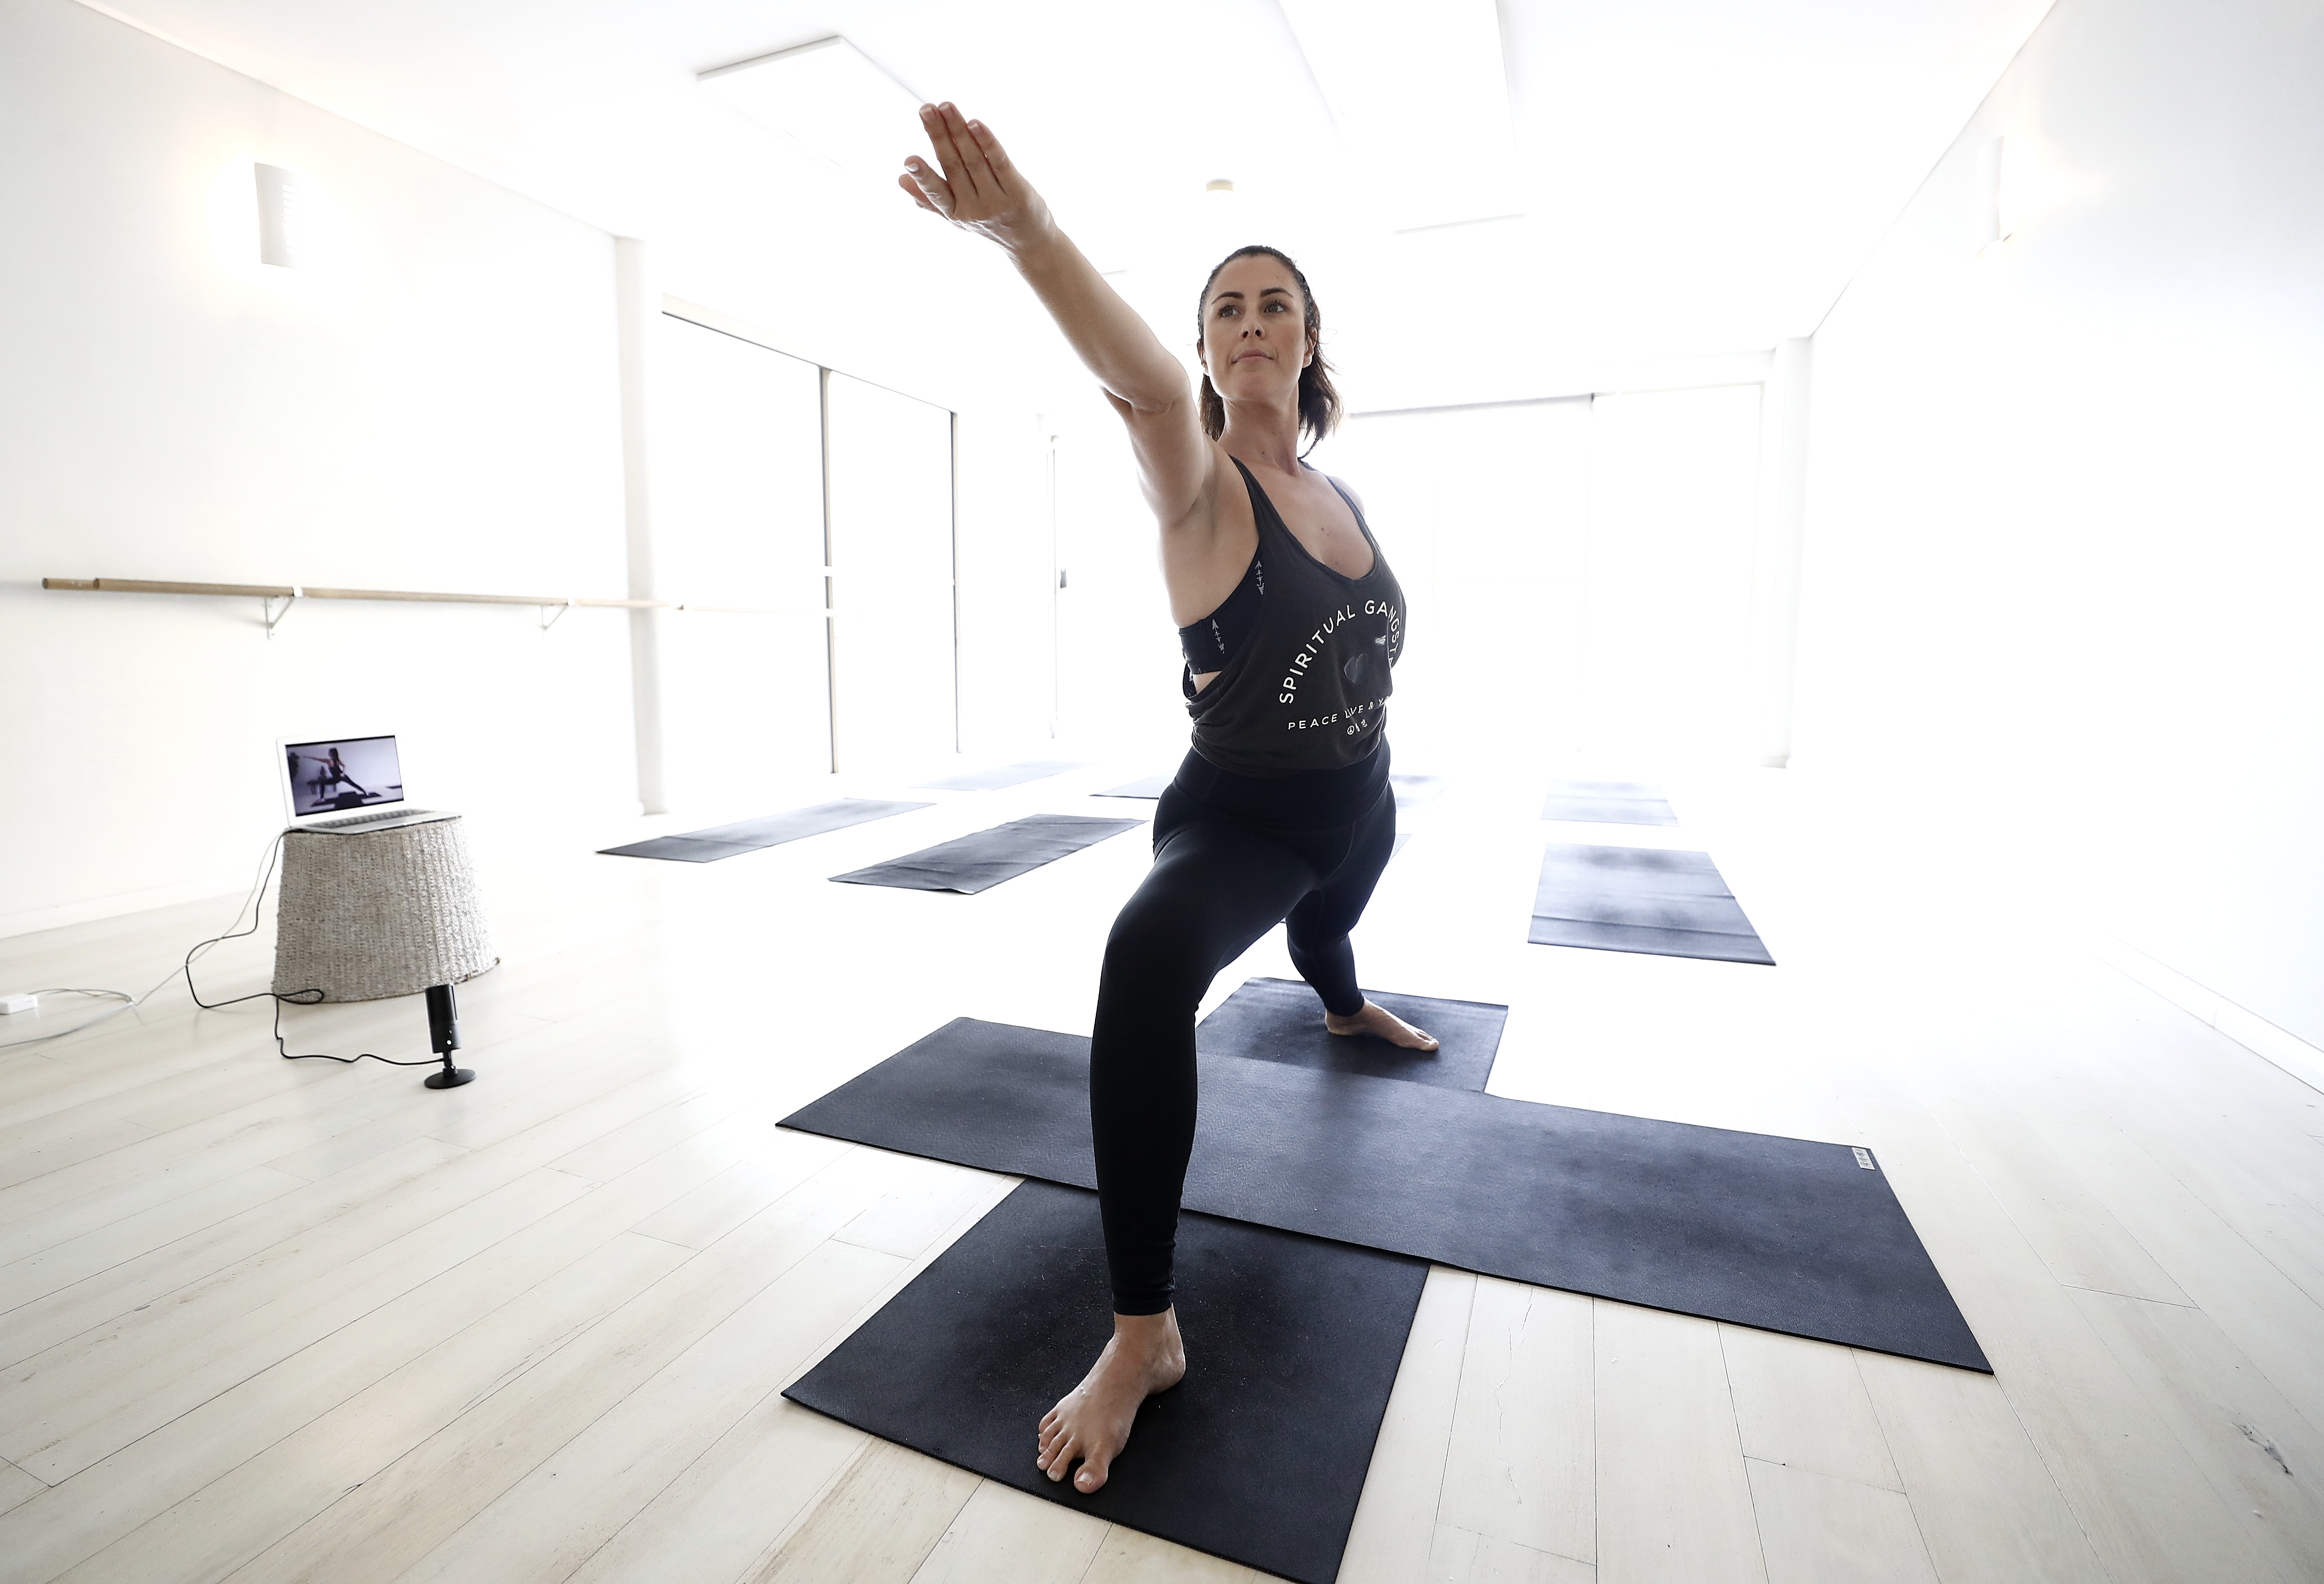 Yoga instructor Asha Elliott conducts a live stream Yoga class at the Clovelly 'This is Yoga' studio on March 23, 2020 in Sydney, Australia. (Photo by Ryan Pierse/Getty Images)